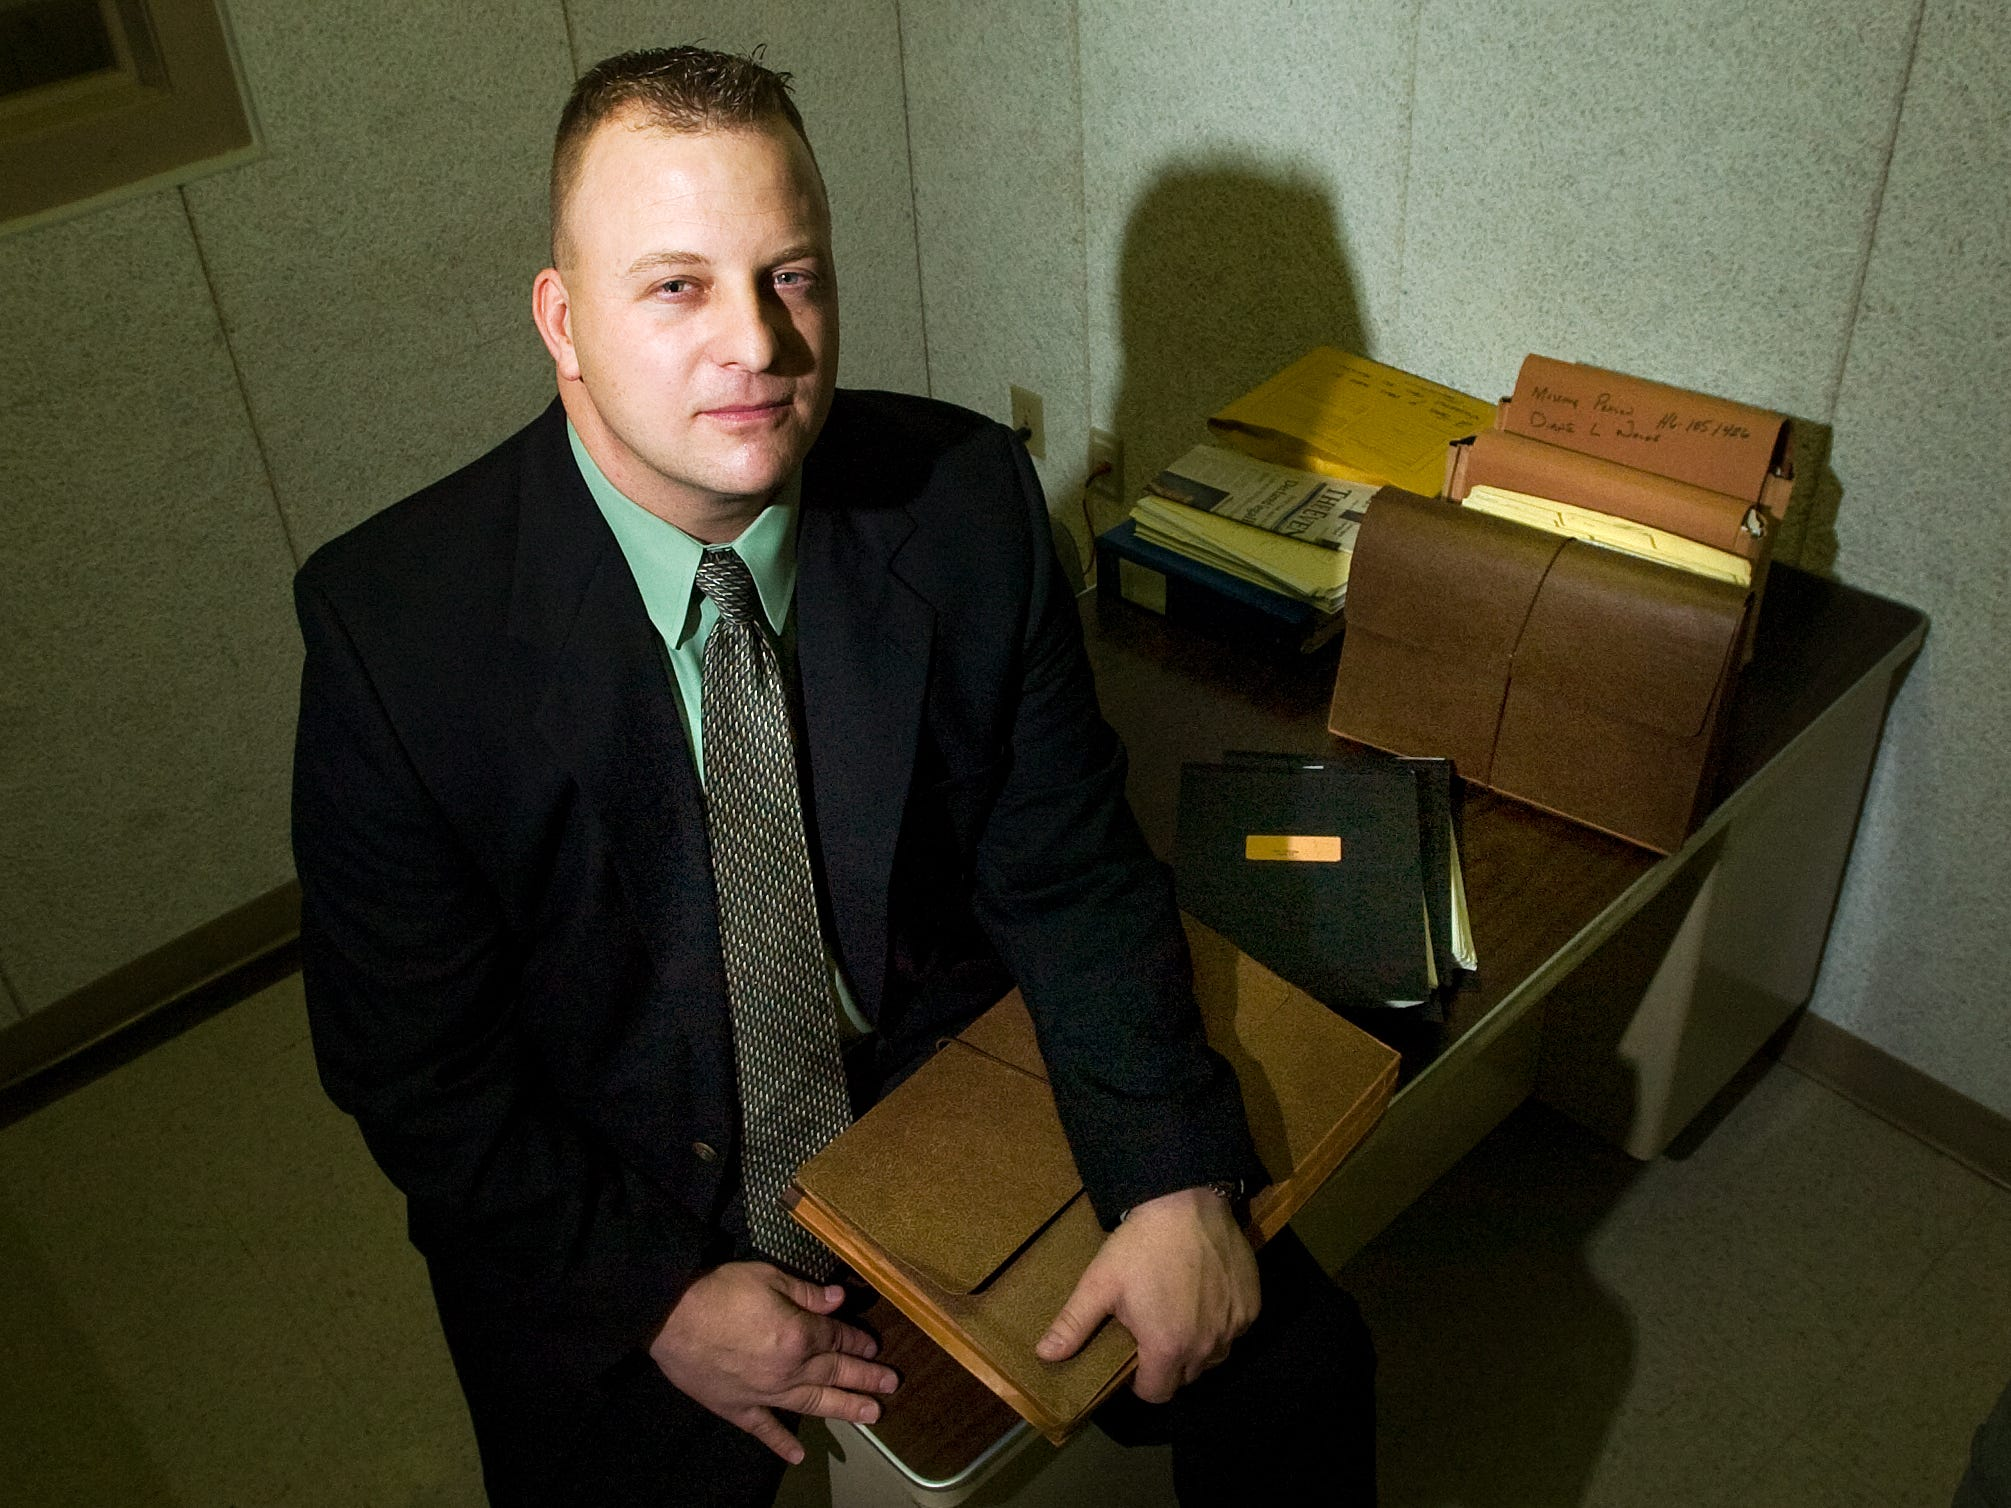 Trooper Scott Denisch, of the Pennsylvania State Police, is the current investigator on Wolf's case.